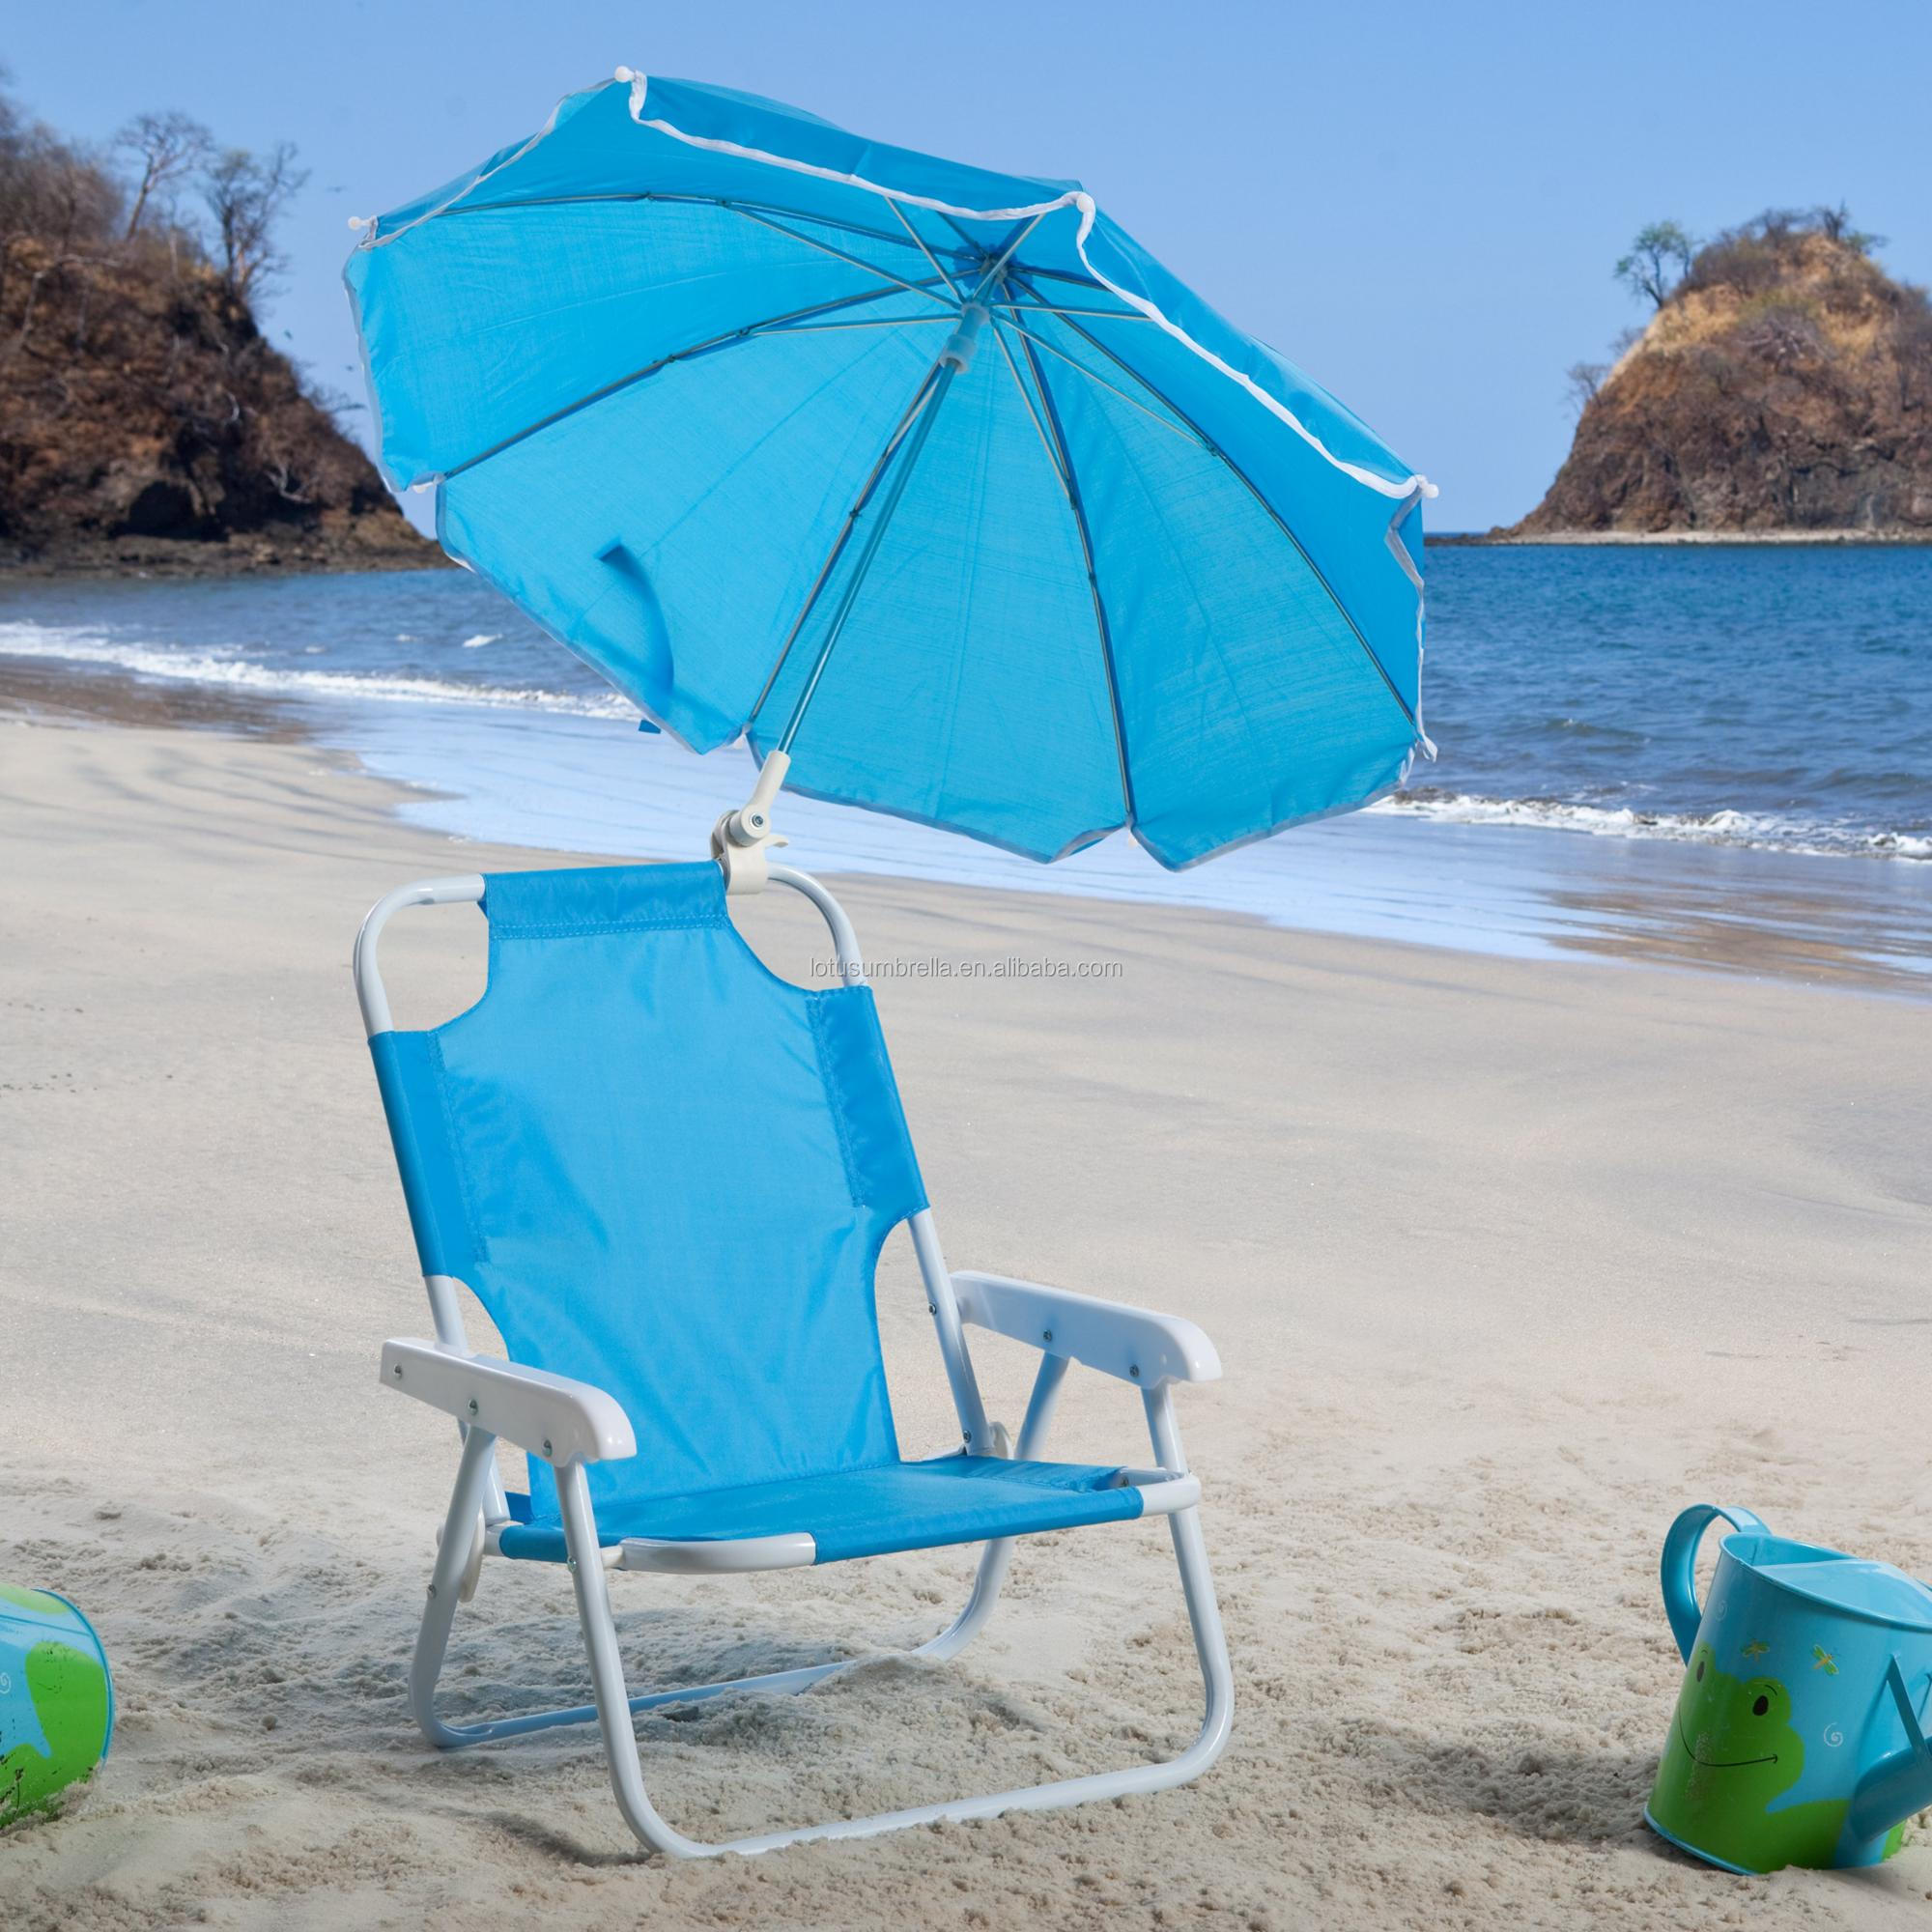 Quality Chinese Products Clamp Style Chair Umbrella for Beach Folding Chair